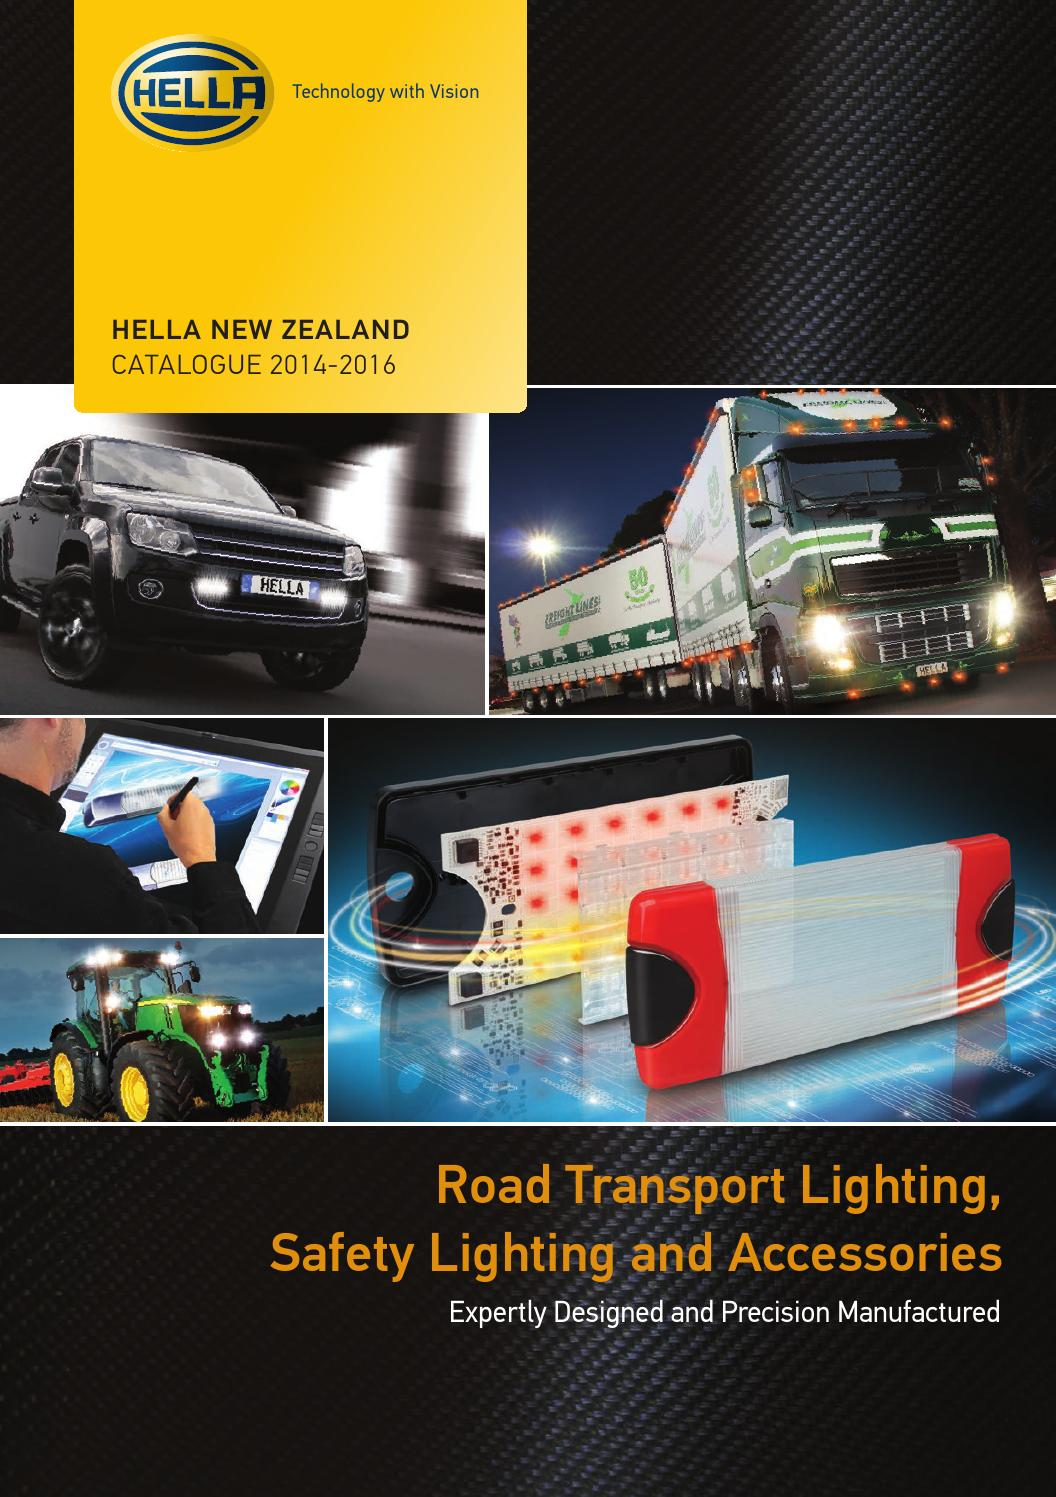 Hella New Zealand Catalogue 2014 2016 By Nz Issuu Use A Relay Or Smart Switch With The 45 Watt Higher Halogen Lights